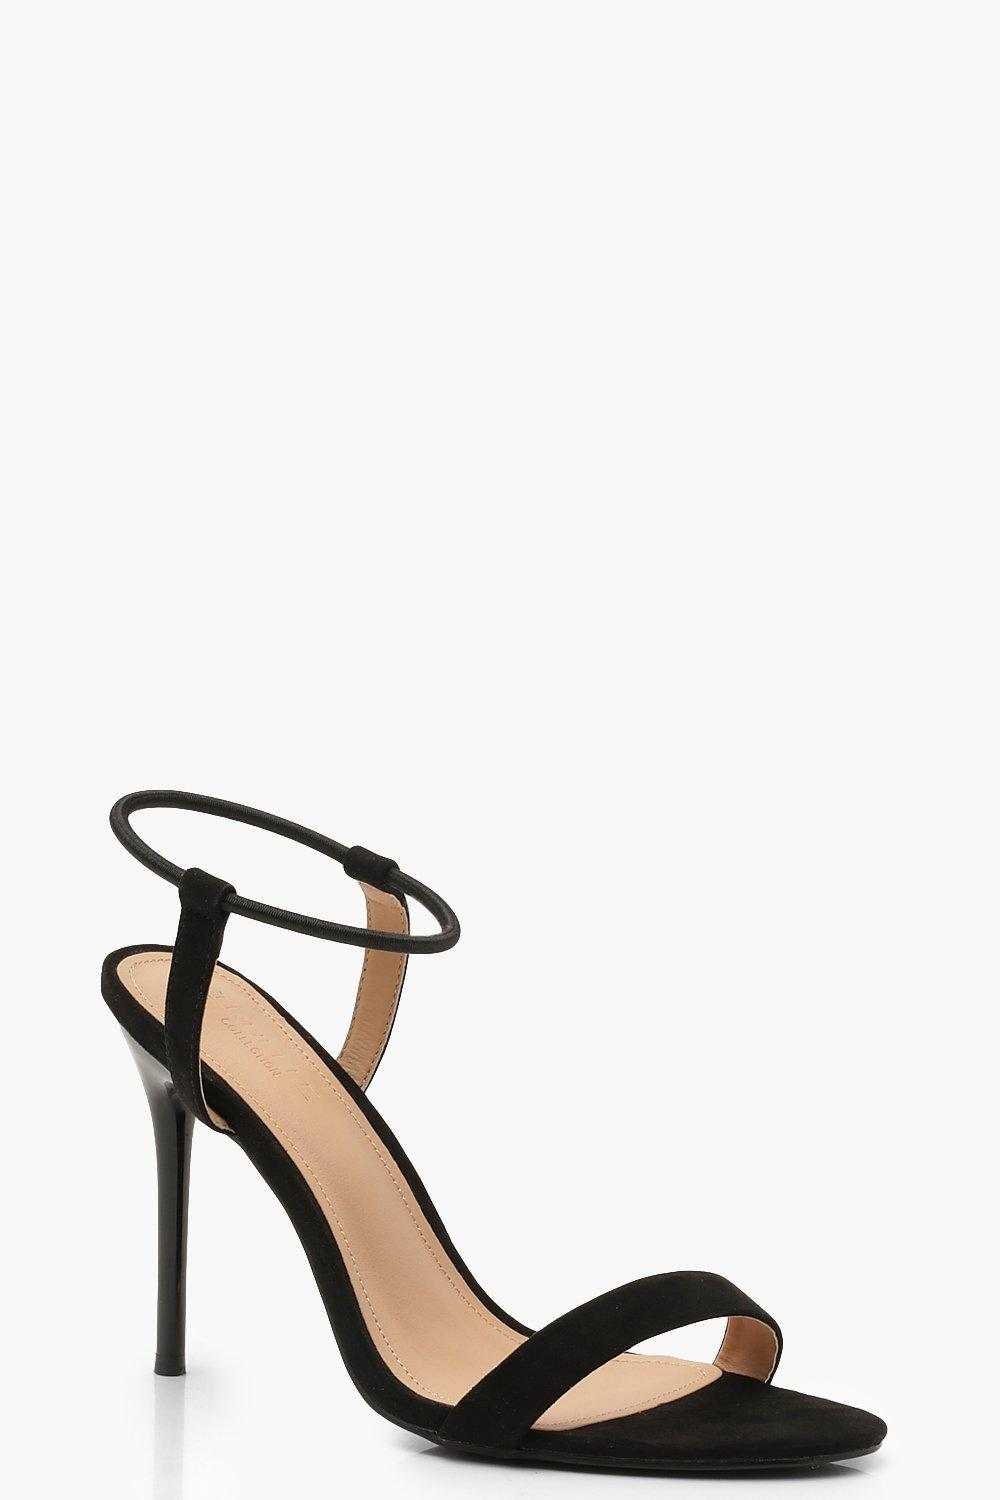 Halo Ankle Strap 2 Part Heels